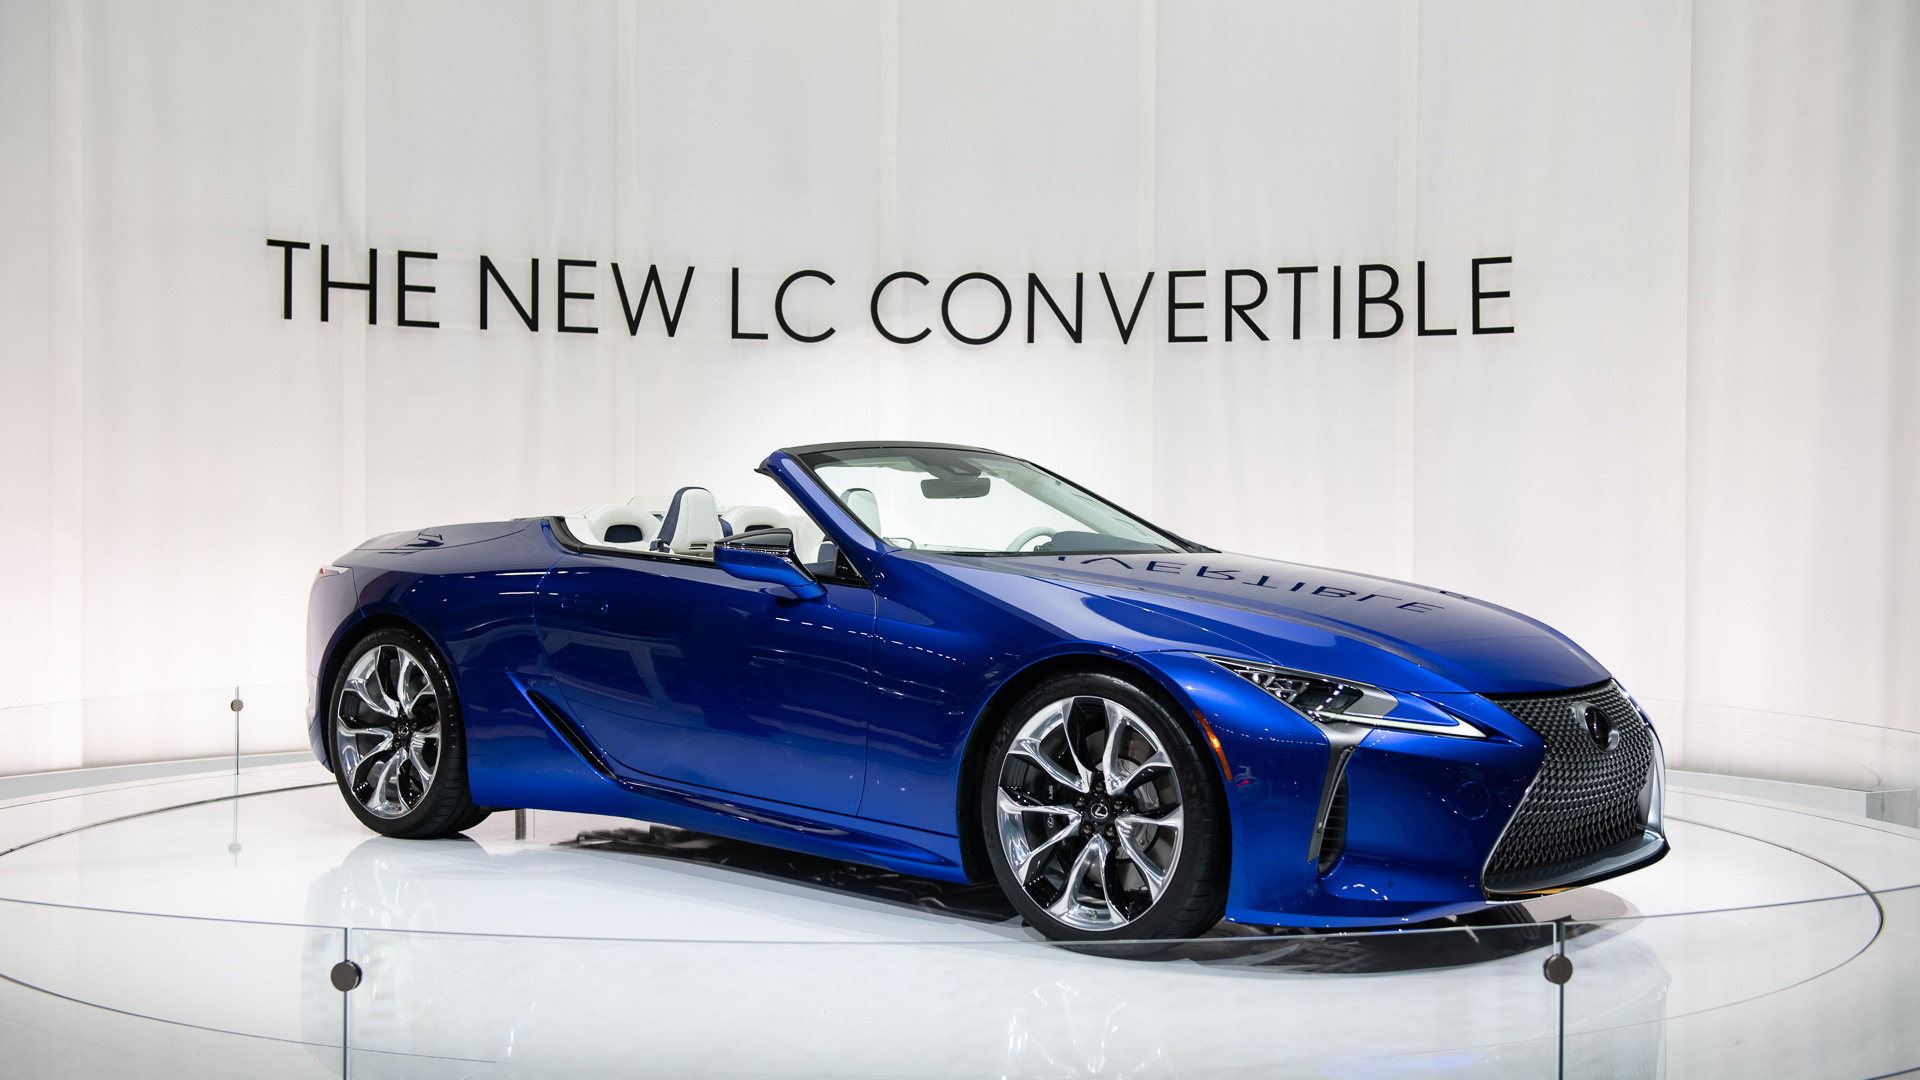 2021 Lexus LC 500 Convertible is a gorgeous V-8 drop-top